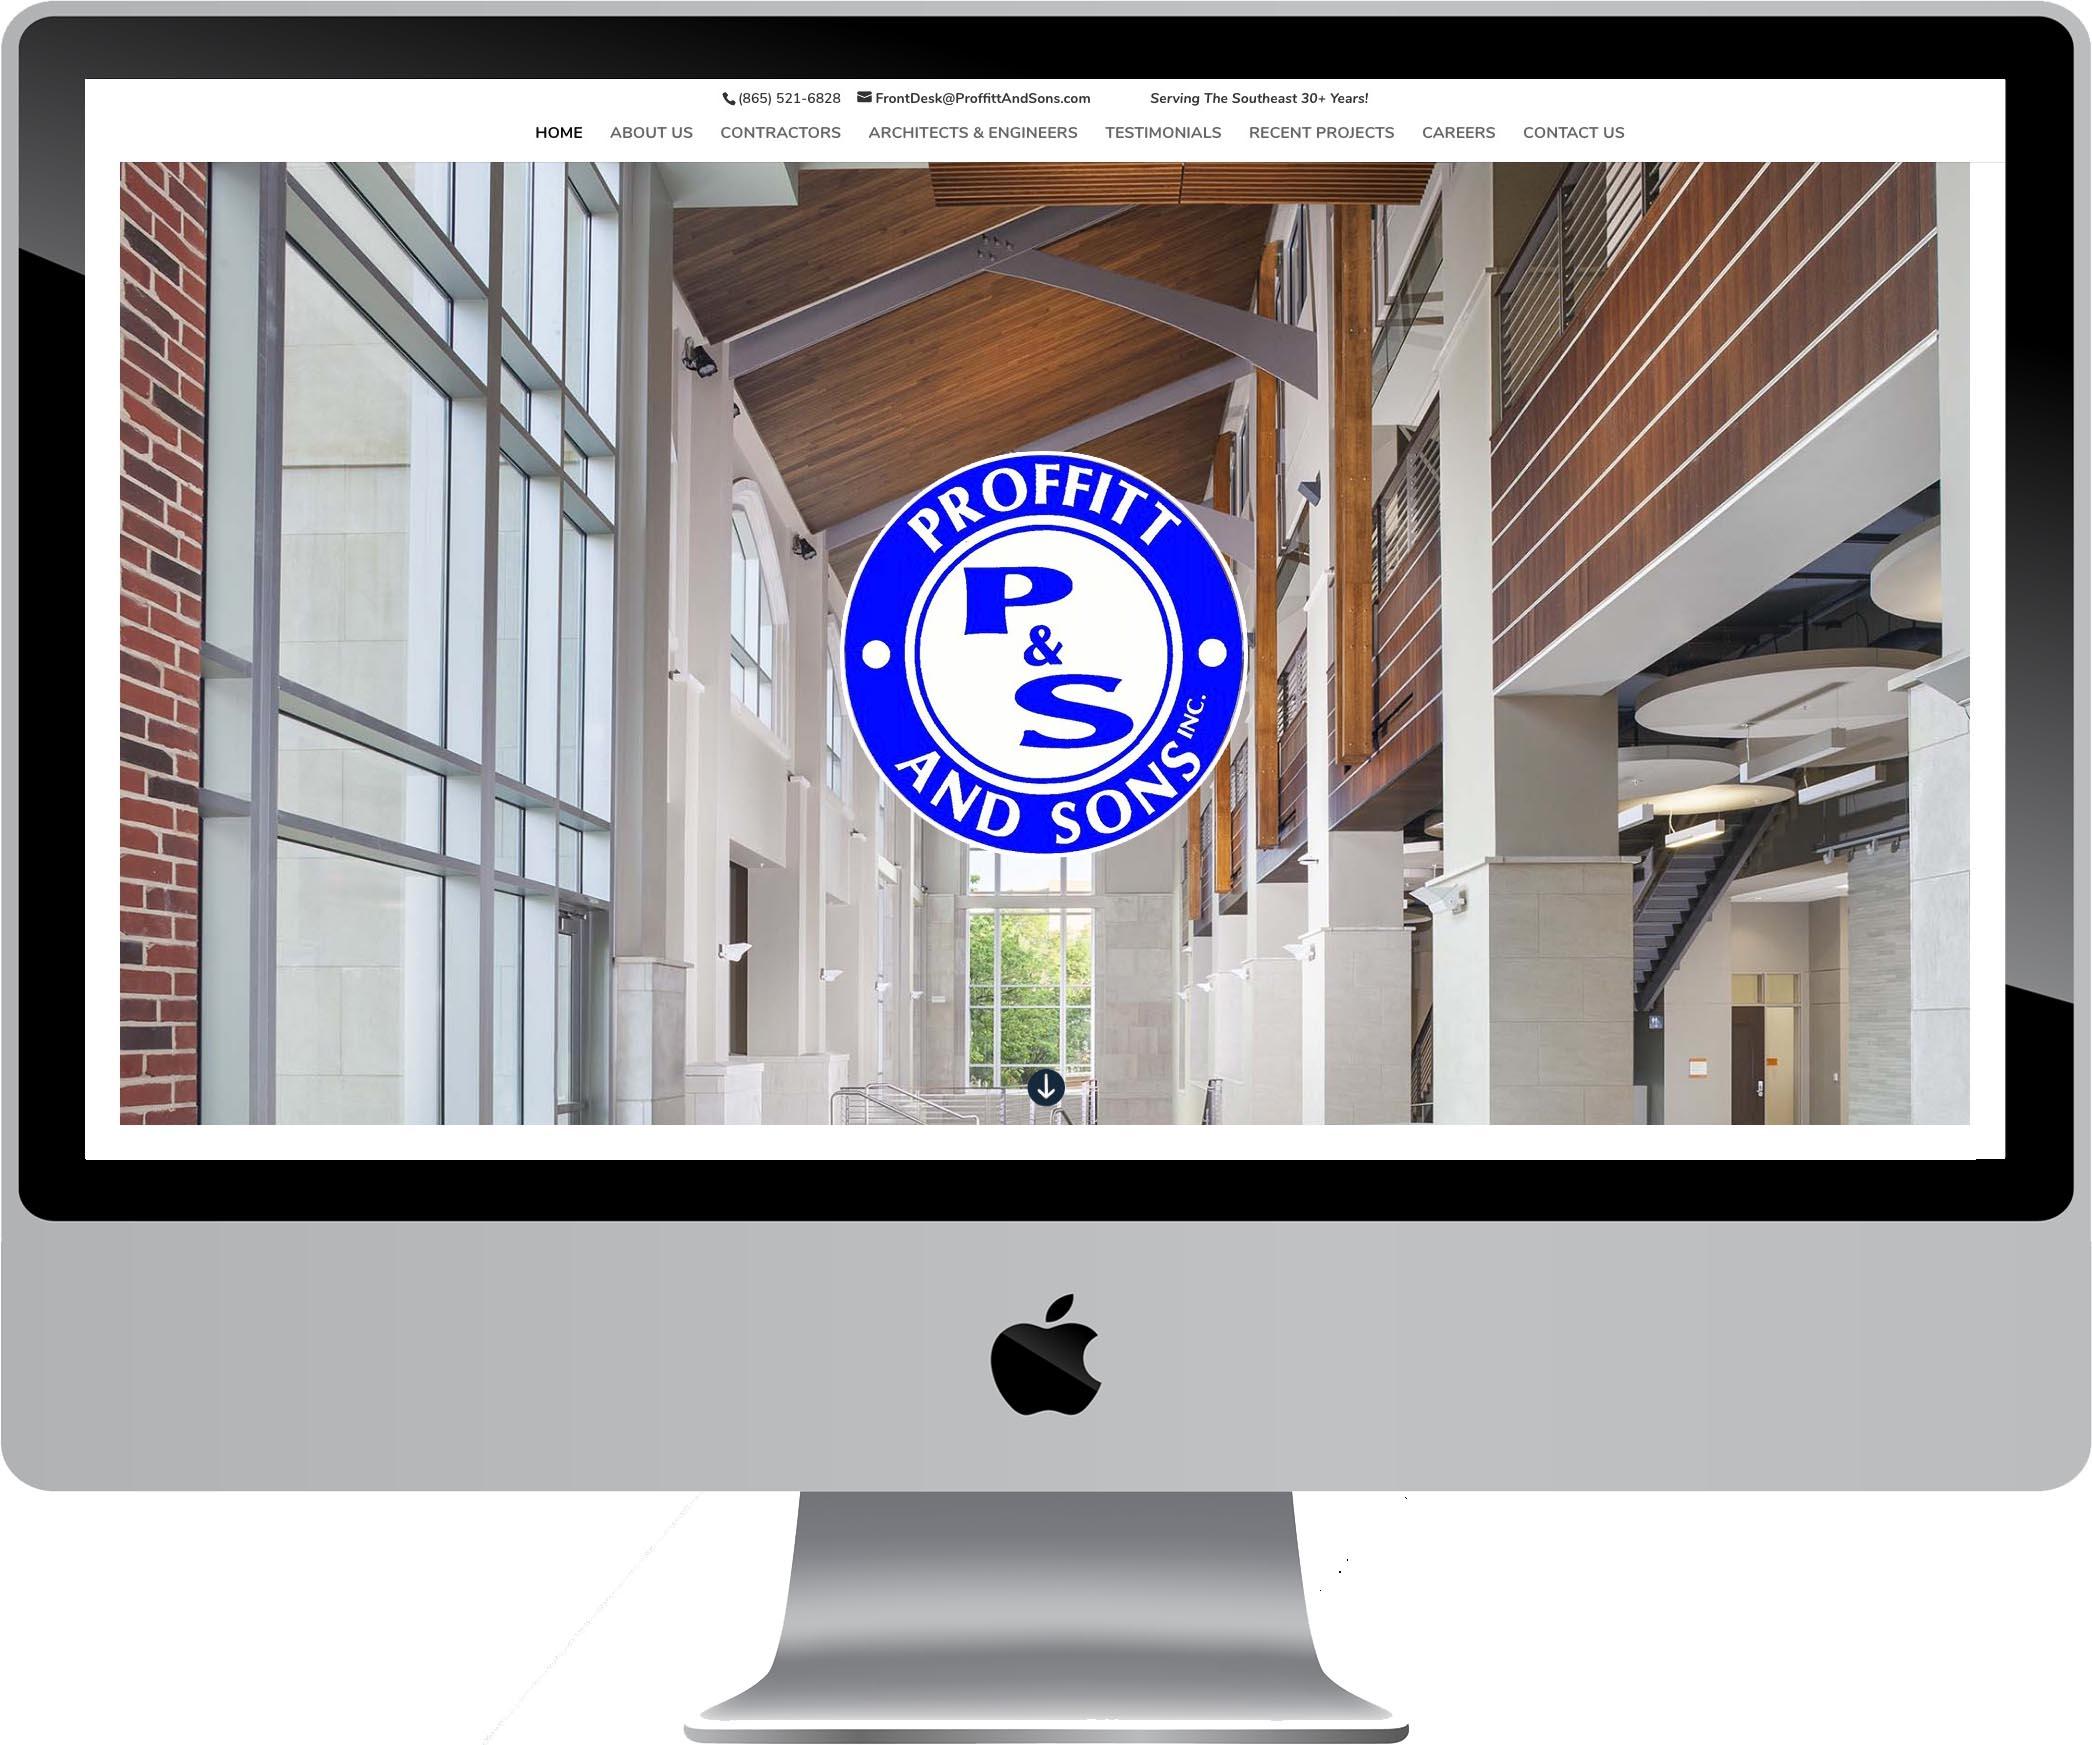 Proffitt and Sons Website Design